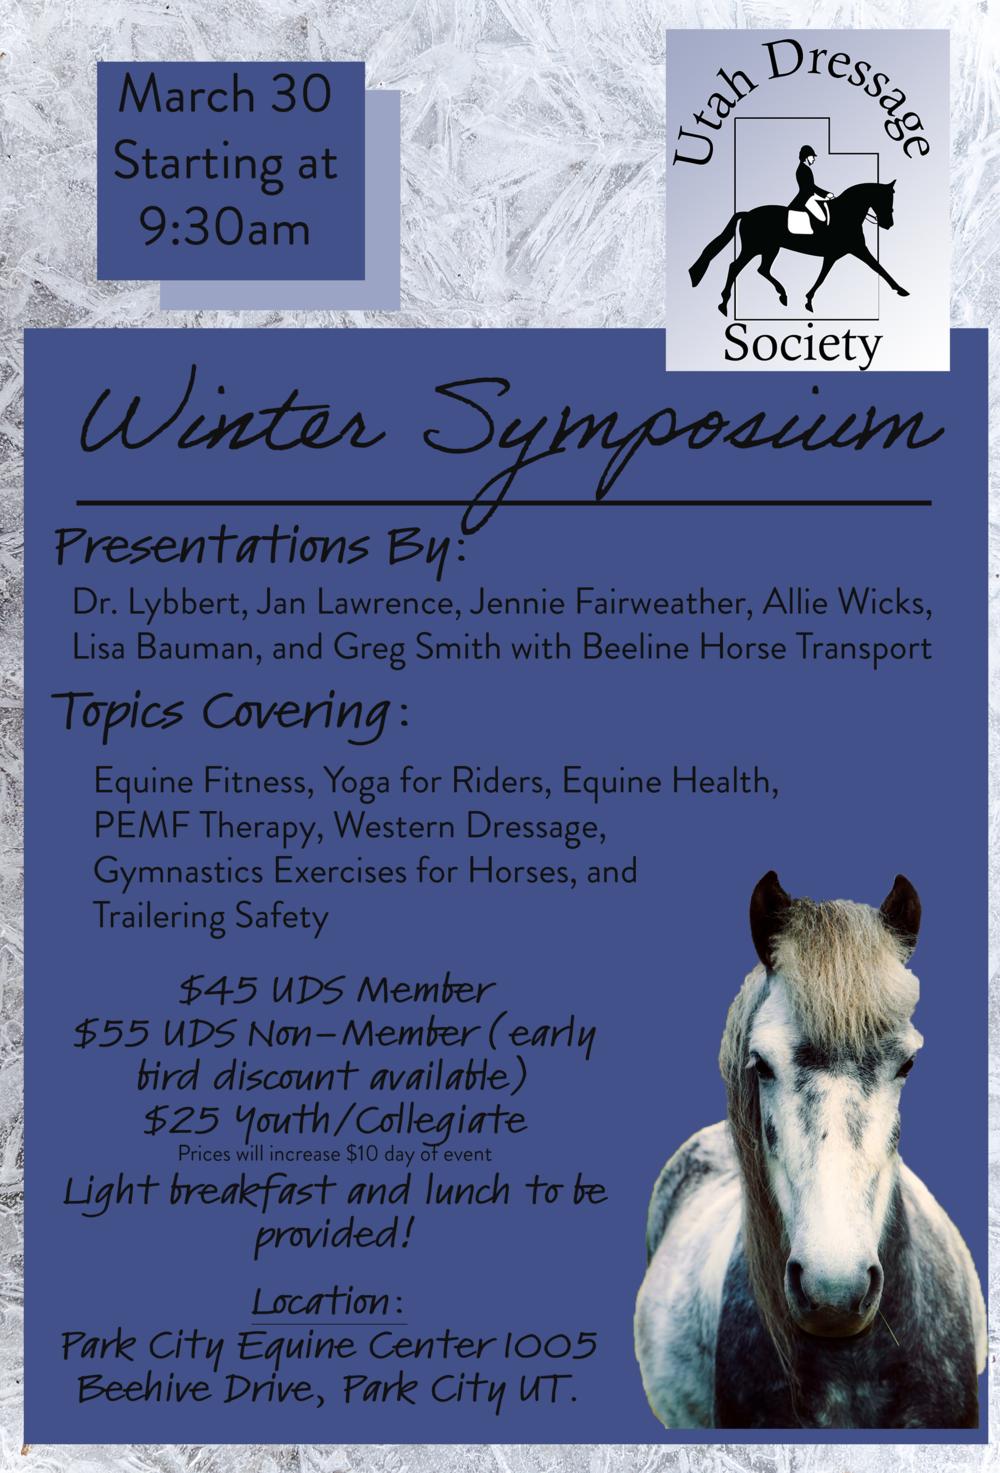 - Join us Saturday, March 30th for our annual symposium!Topics covering equine PEMF therapy, horse and rider fitness, horse health, western dressage, and trailering safety.Join us for a great day of learning at Park City Equine Center!Light breakfast & lunch included.Thank you to Dr. Blair Lybbert and the Park City Equine Center for hosting us again this year!www.parkcityequinecenter.com